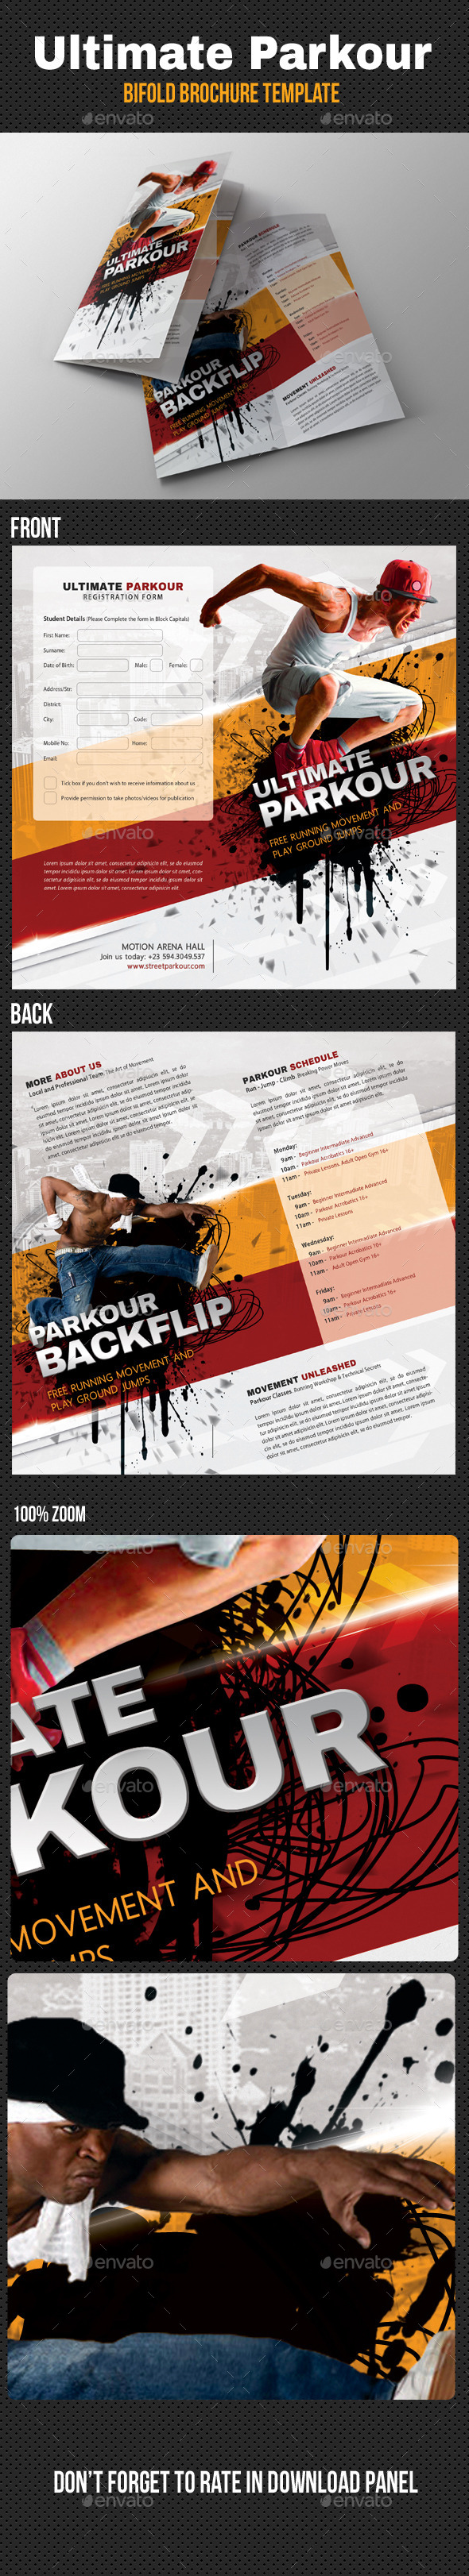 Ultimate Parkour Bifold Brochure - Informational Brochures